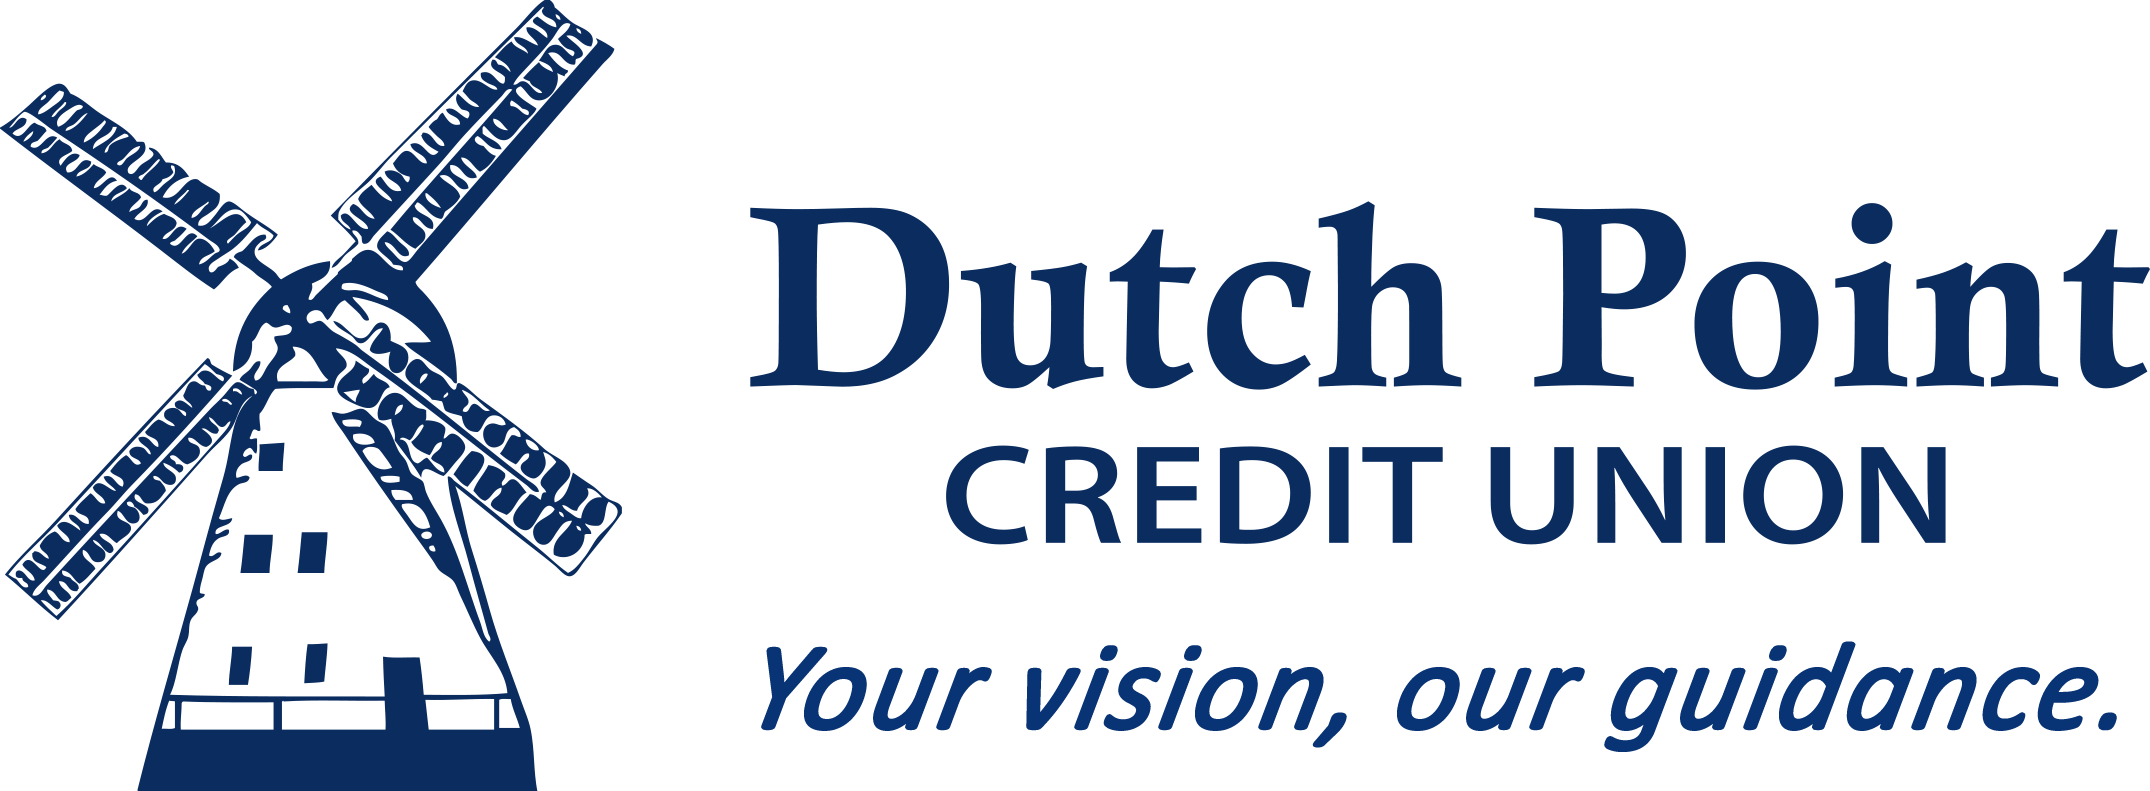 Dutch Point Credit Union. Your vision, our guidance.